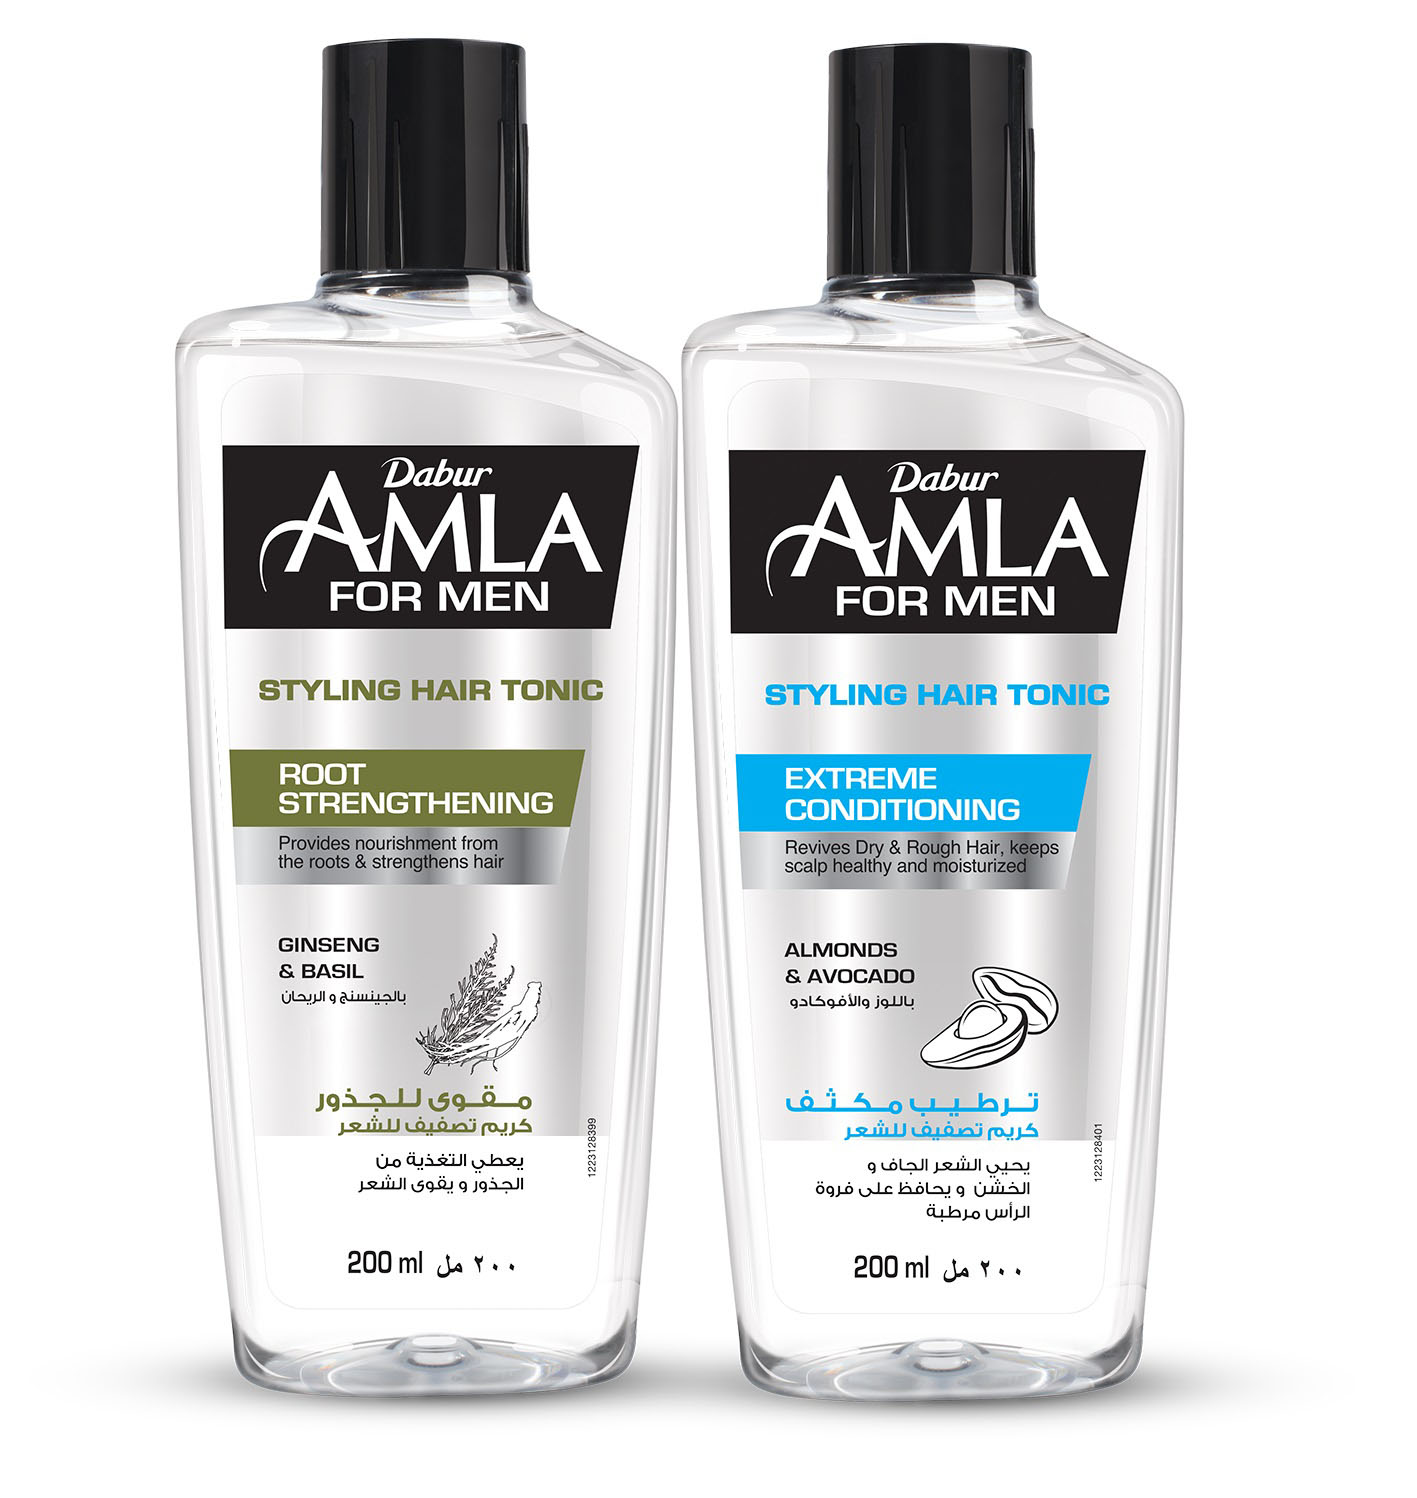 Amla-Hair-Tonic-Range.jpg